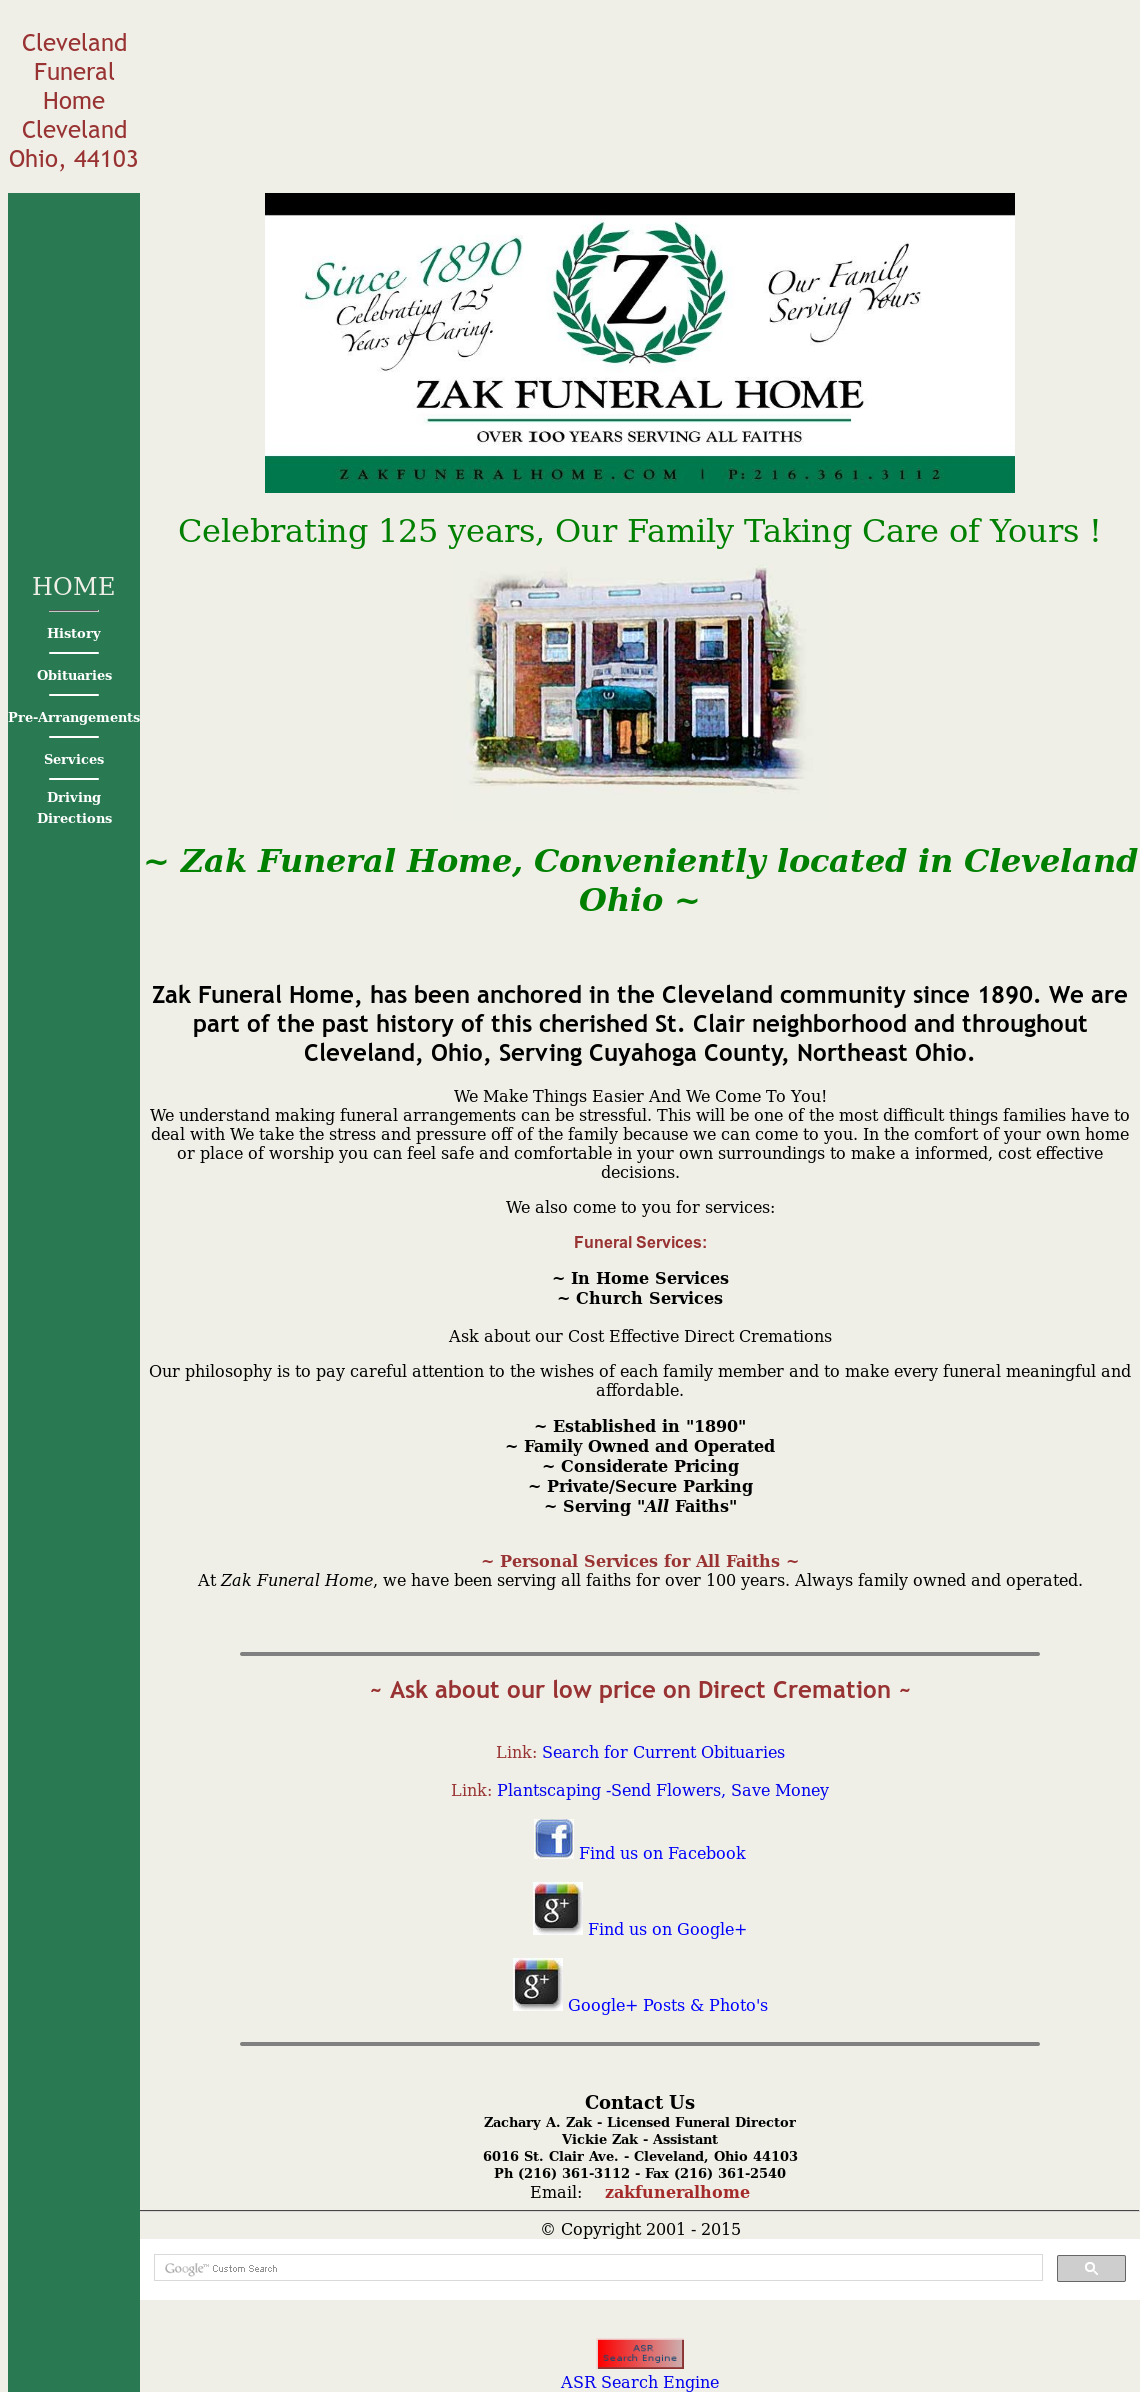 ZAK Funeral Home Competitors, Revenue and Employees - Owler